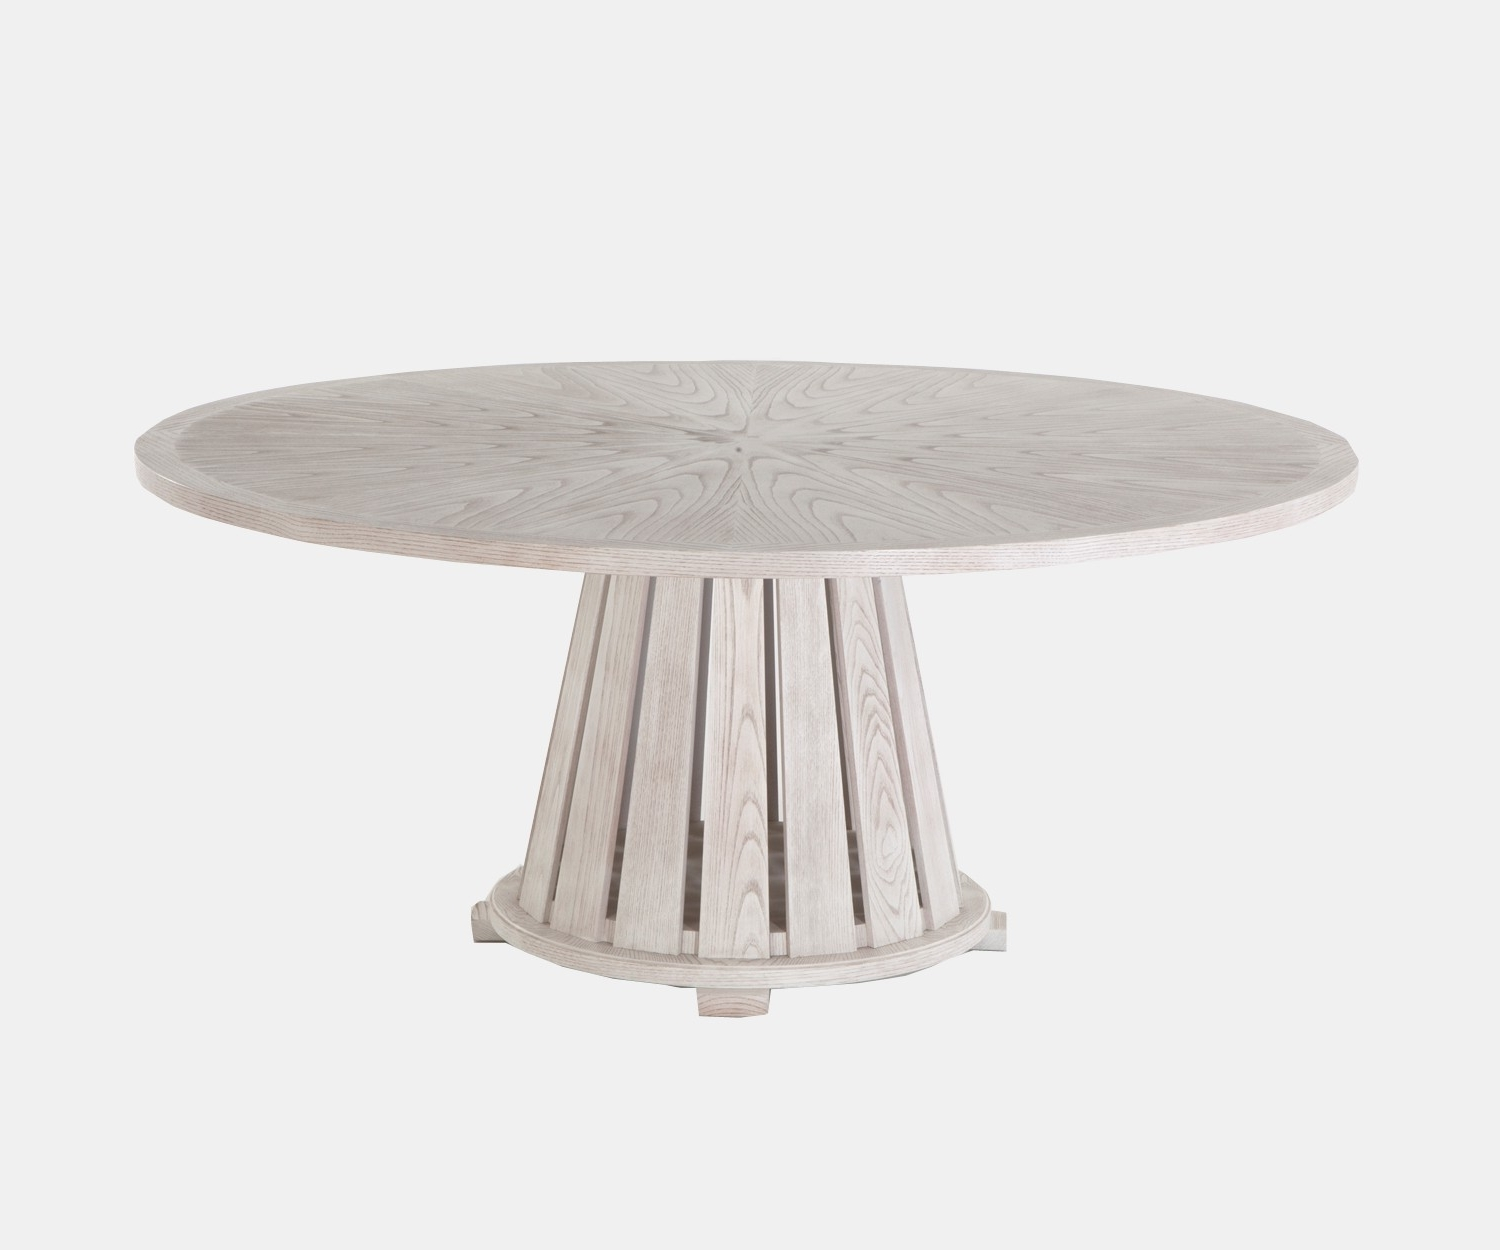 William Yeoward With Regard To Artisanal Dining Tables (View 18 of 25)